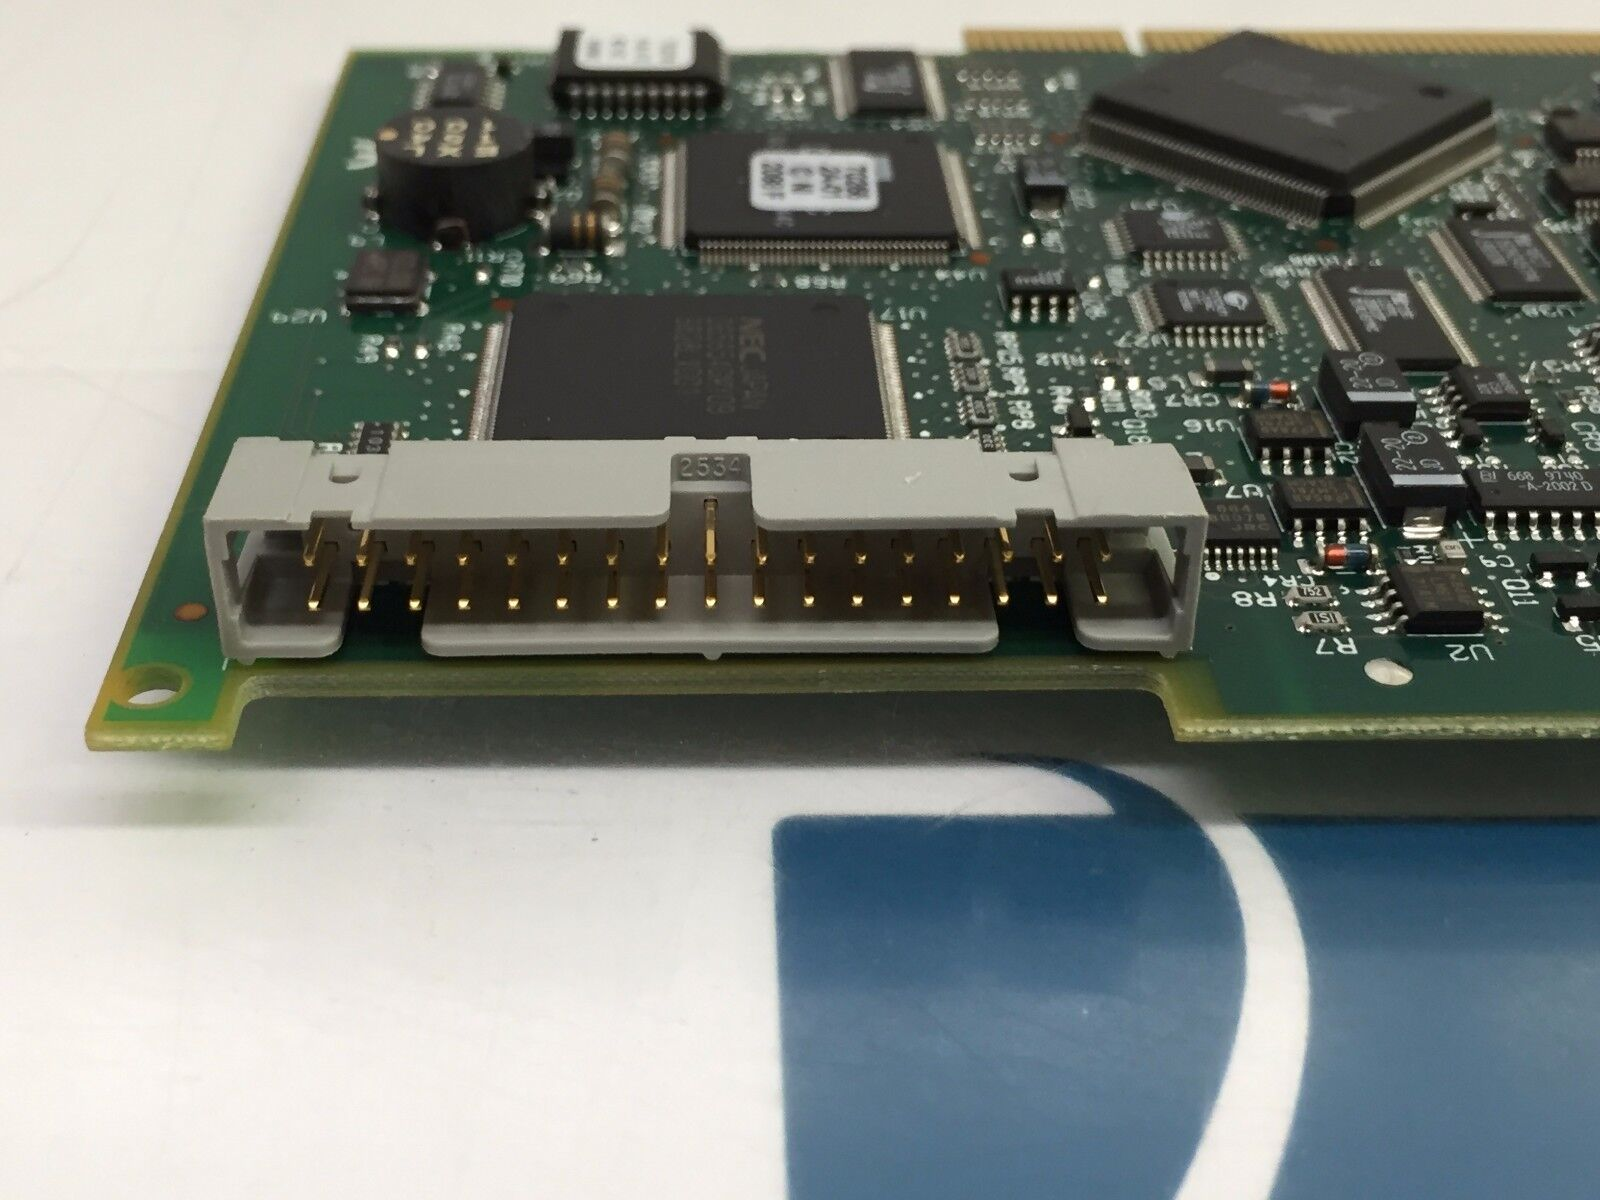 National Instruments Pci Mio 16e 4 Multifunction Daq 12 Bit Card Mouse Retract Micropack Mp Y 212 Usb